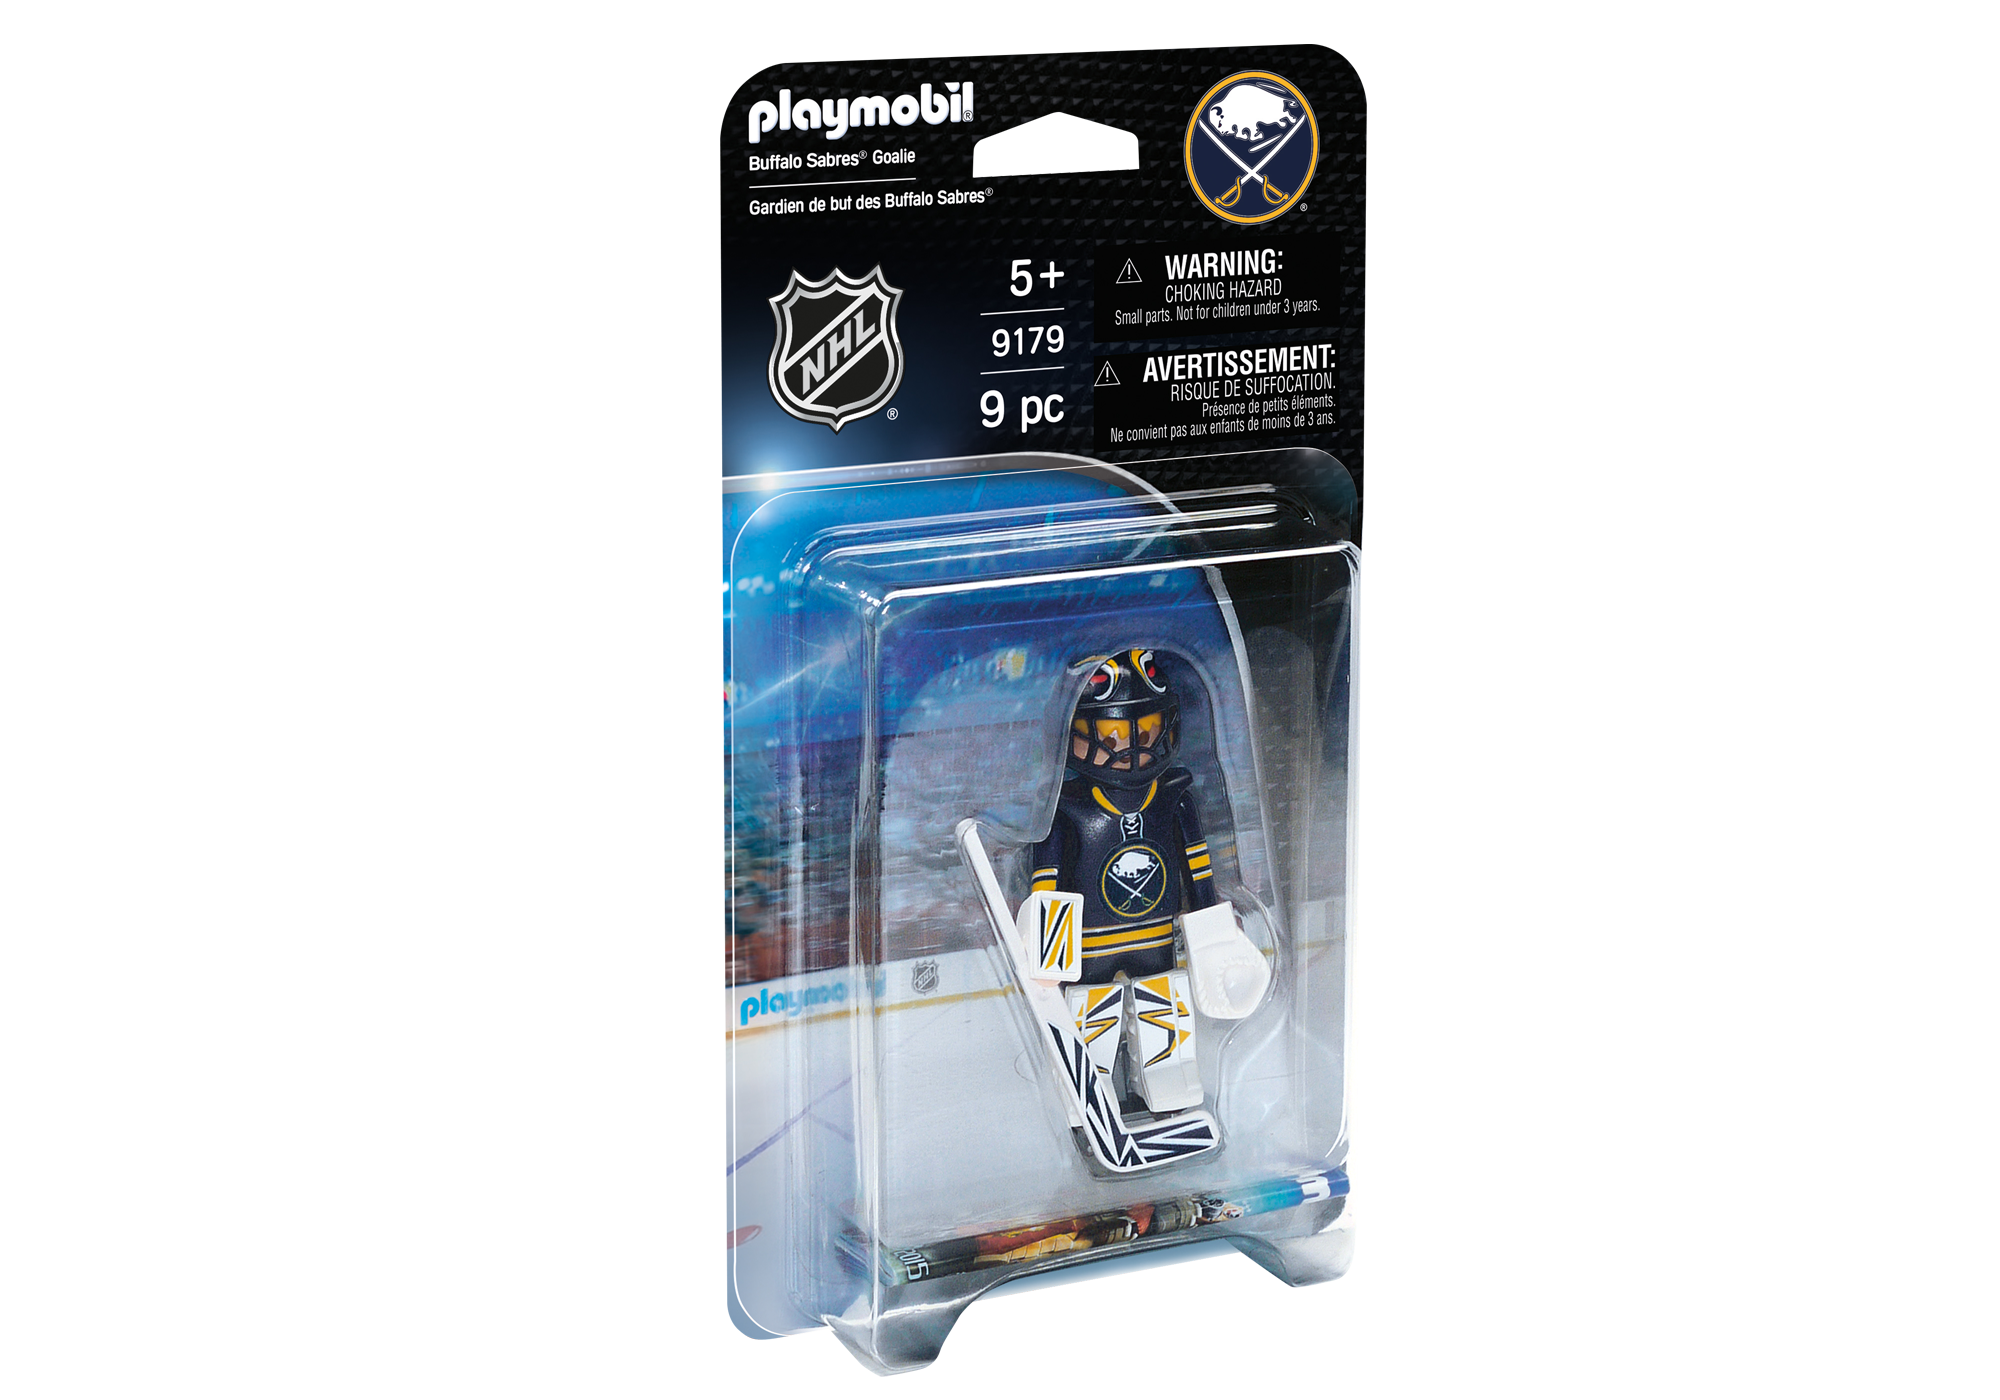 http://media.playmobil.com/i/playmobil/9179_product_box_front/NHL™ Buffalo Sabres™ Goalie